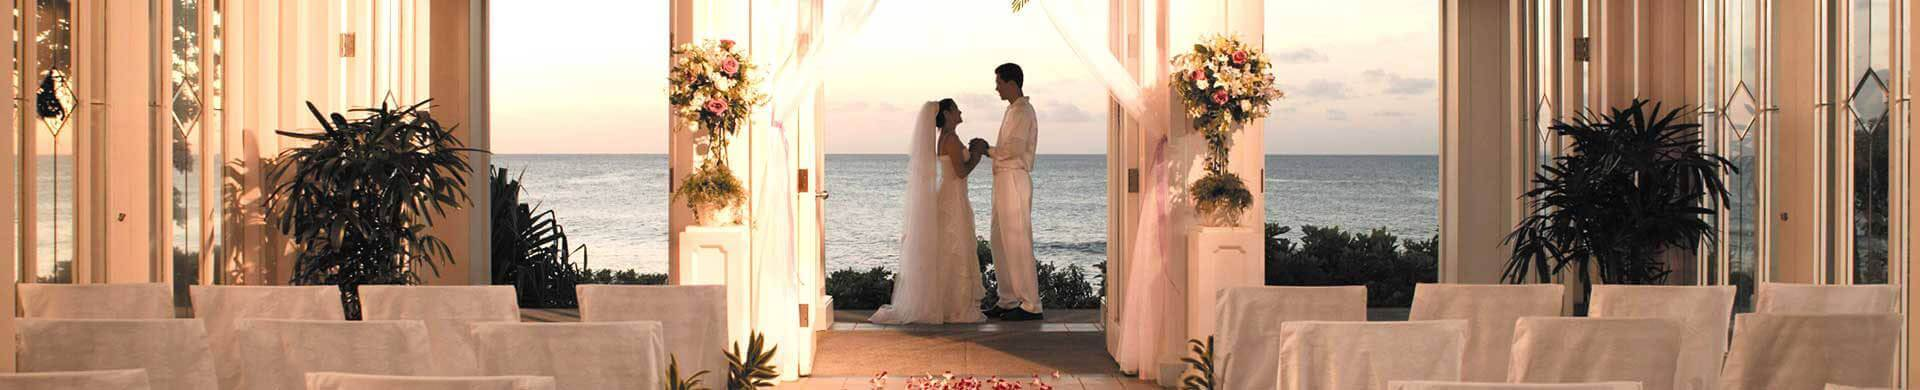 Plan your wedding in Sri Lanka with Wedding Package from the best Tour Operators in Sri Lanka